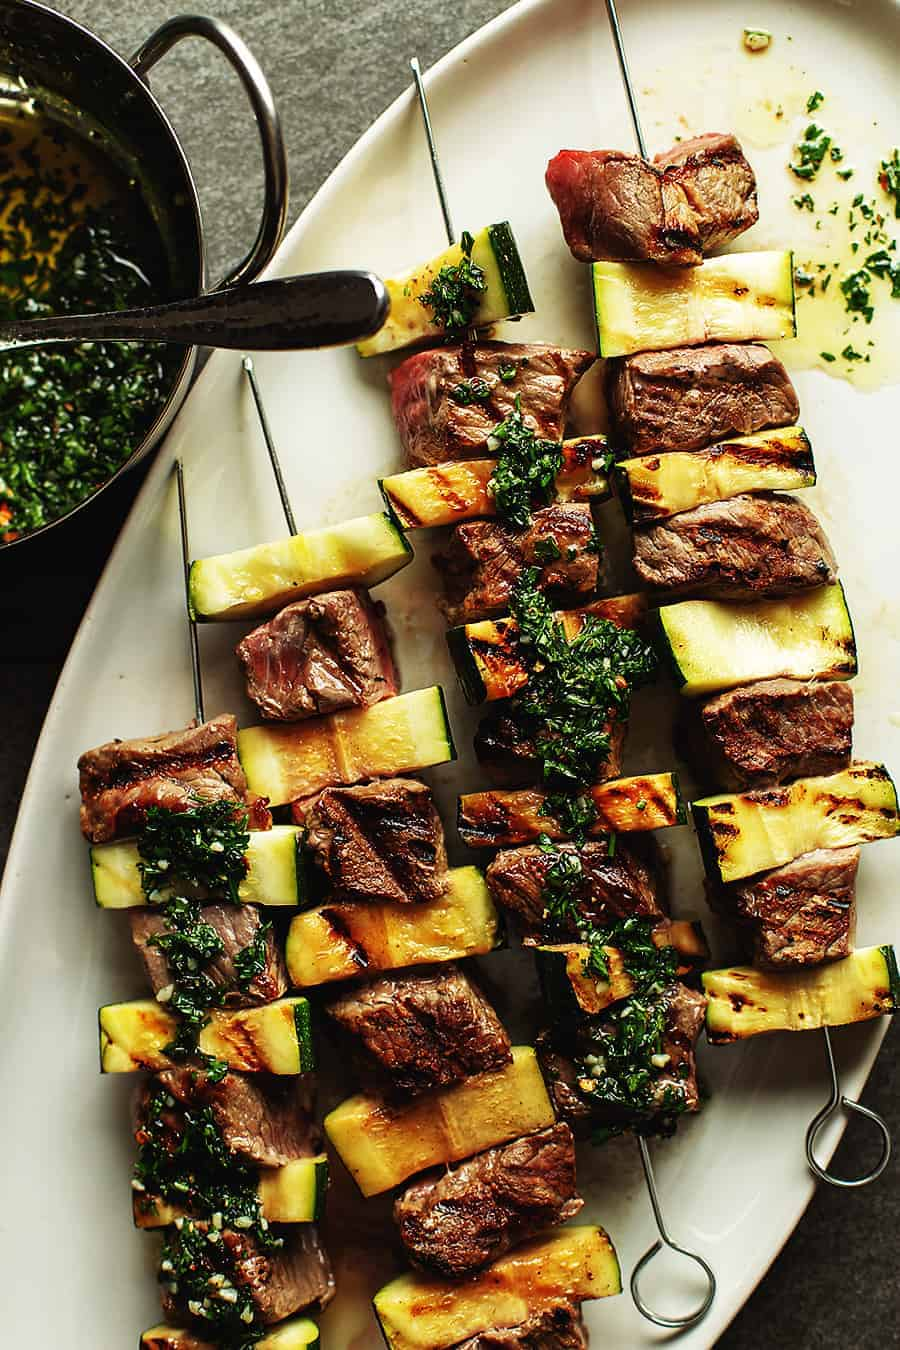 Steak Shish Kabob with Chimichurri